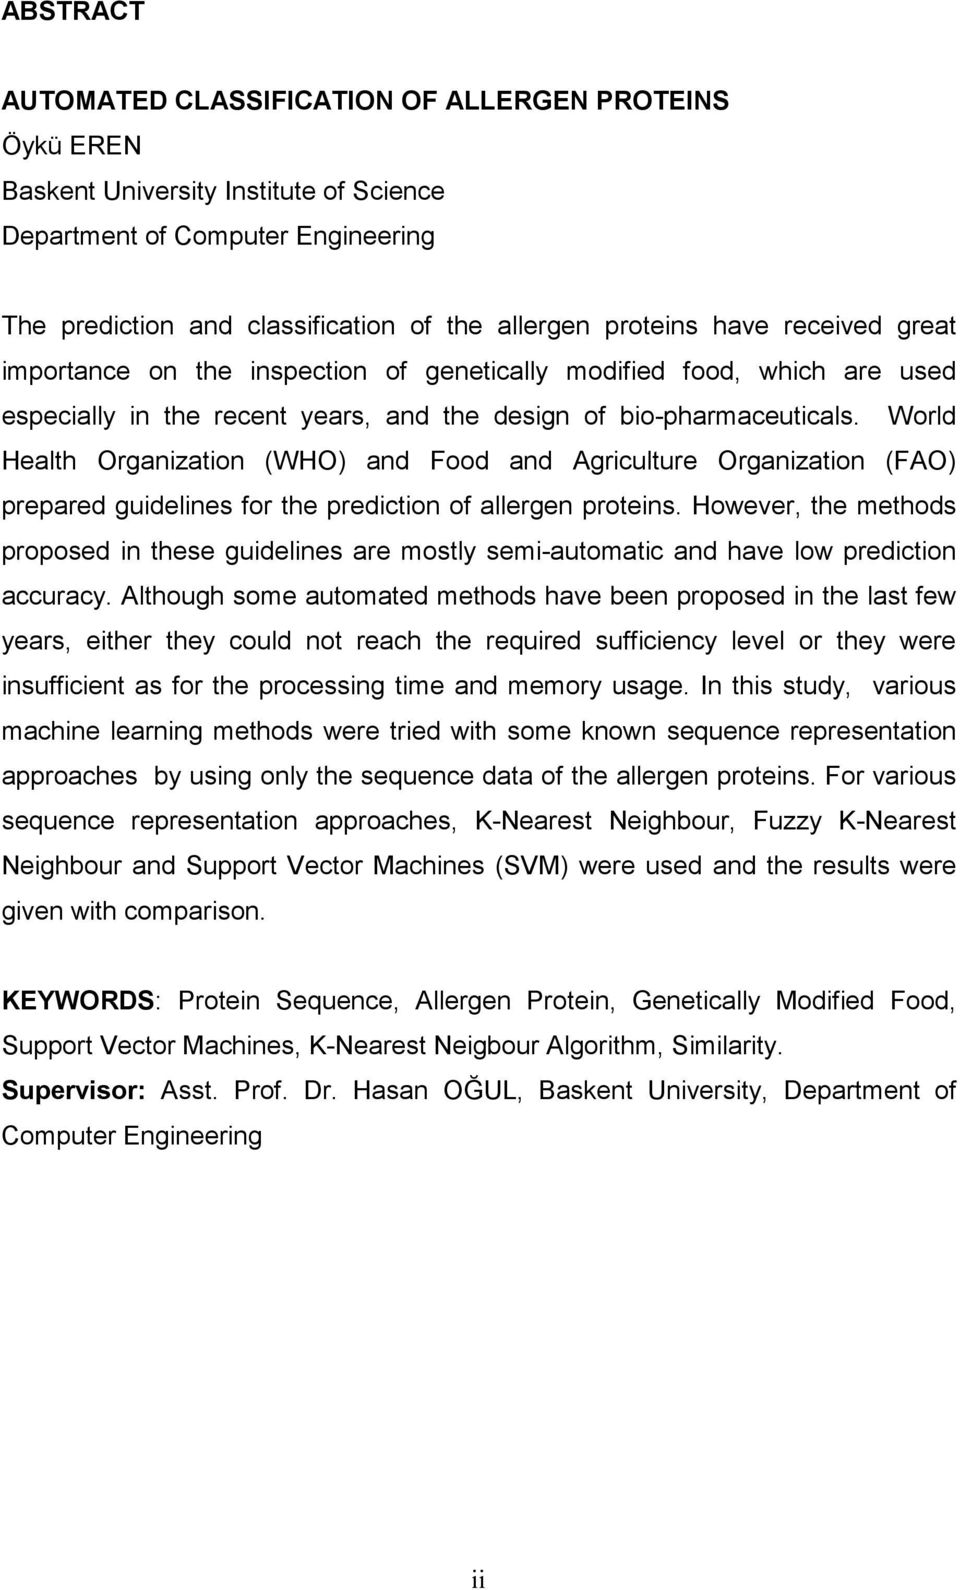 World Health Organization (WHO) and Food and Agriculture Organization (FAO) prepared guidelines for the prediction of allergen proteins.